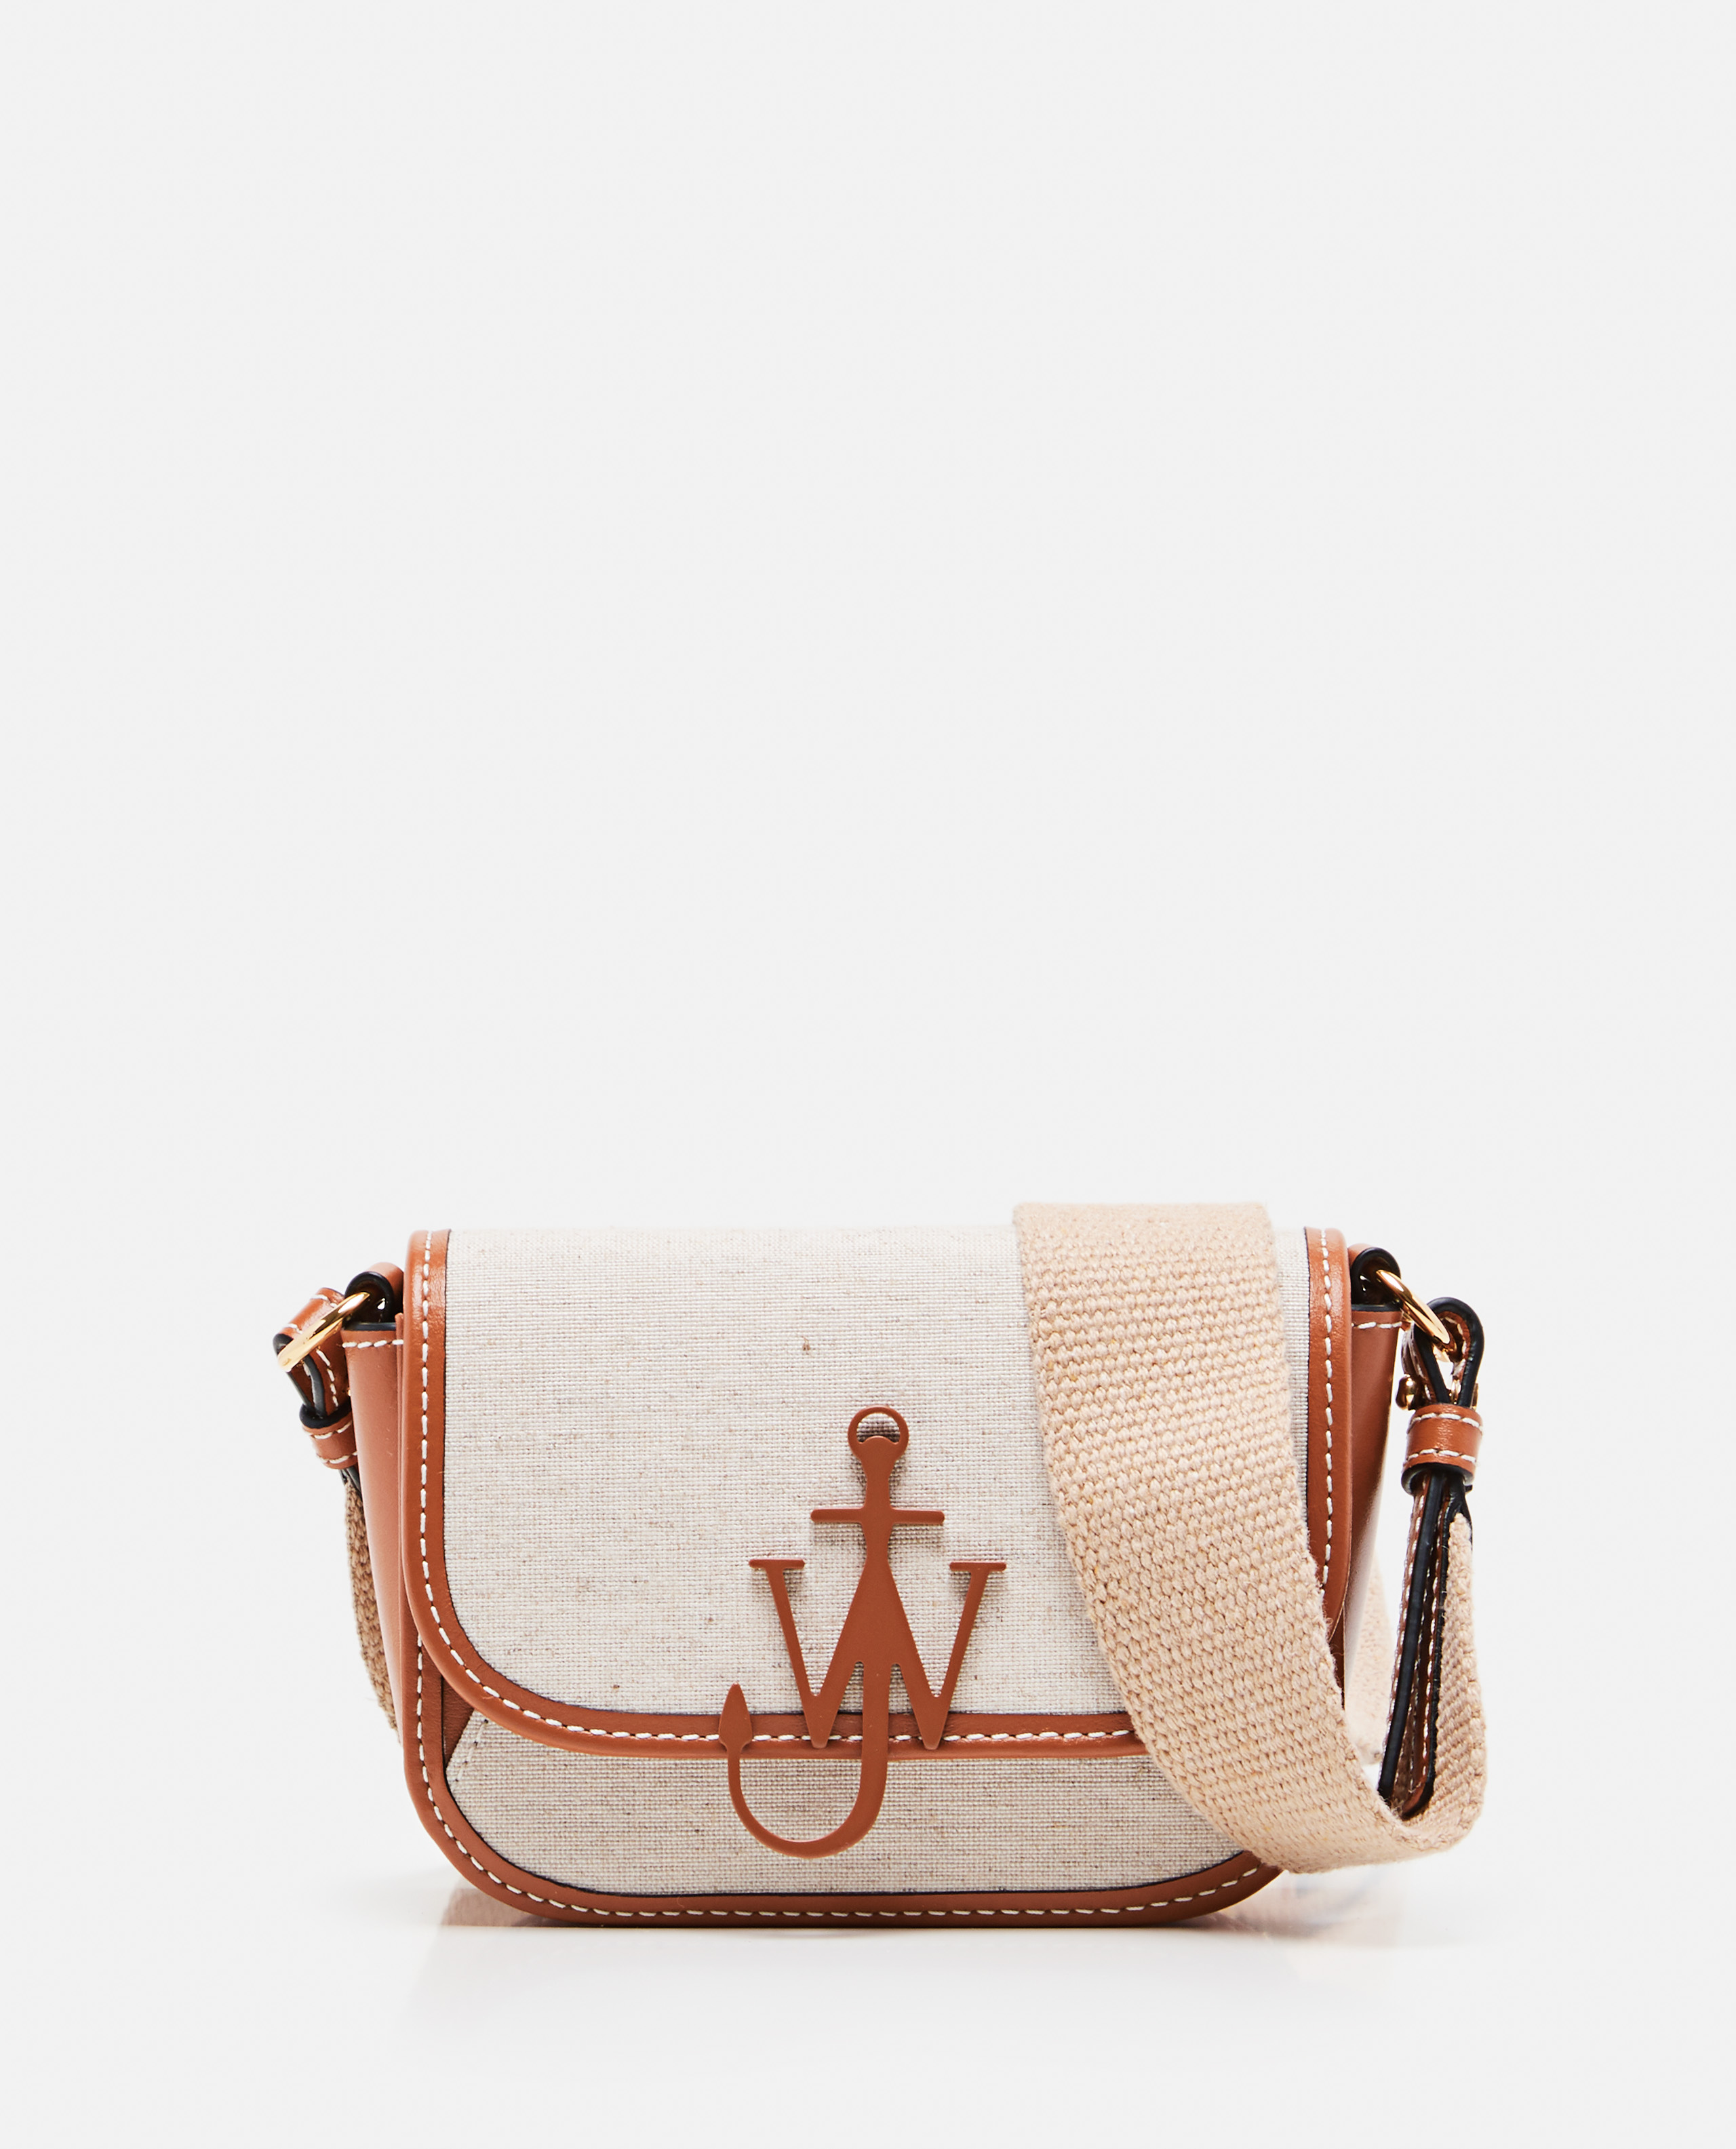 Jw Anderson Leathers J.W. ANDERSON ANCHOR NANO BAG